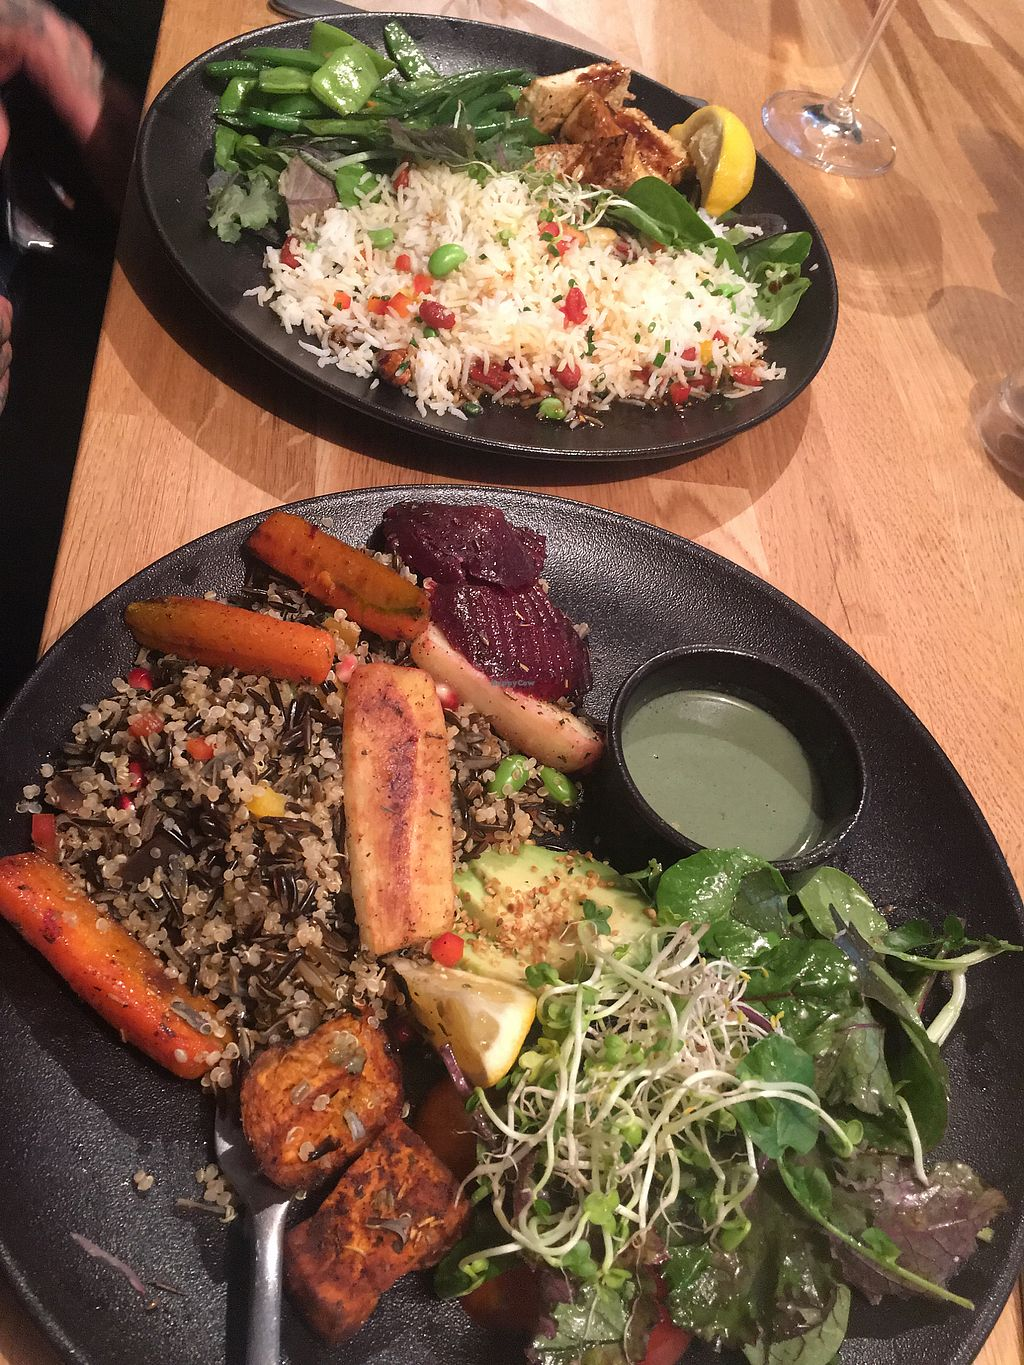 """Photo of VEVAY  by <a href=""""/members/profile/Noe"""">Noe</a> <br/>Delicious rice based meals? <br/> October 10, 2017  - <a href='/contact/abuse/image/56576/314054'>Report</a>"""